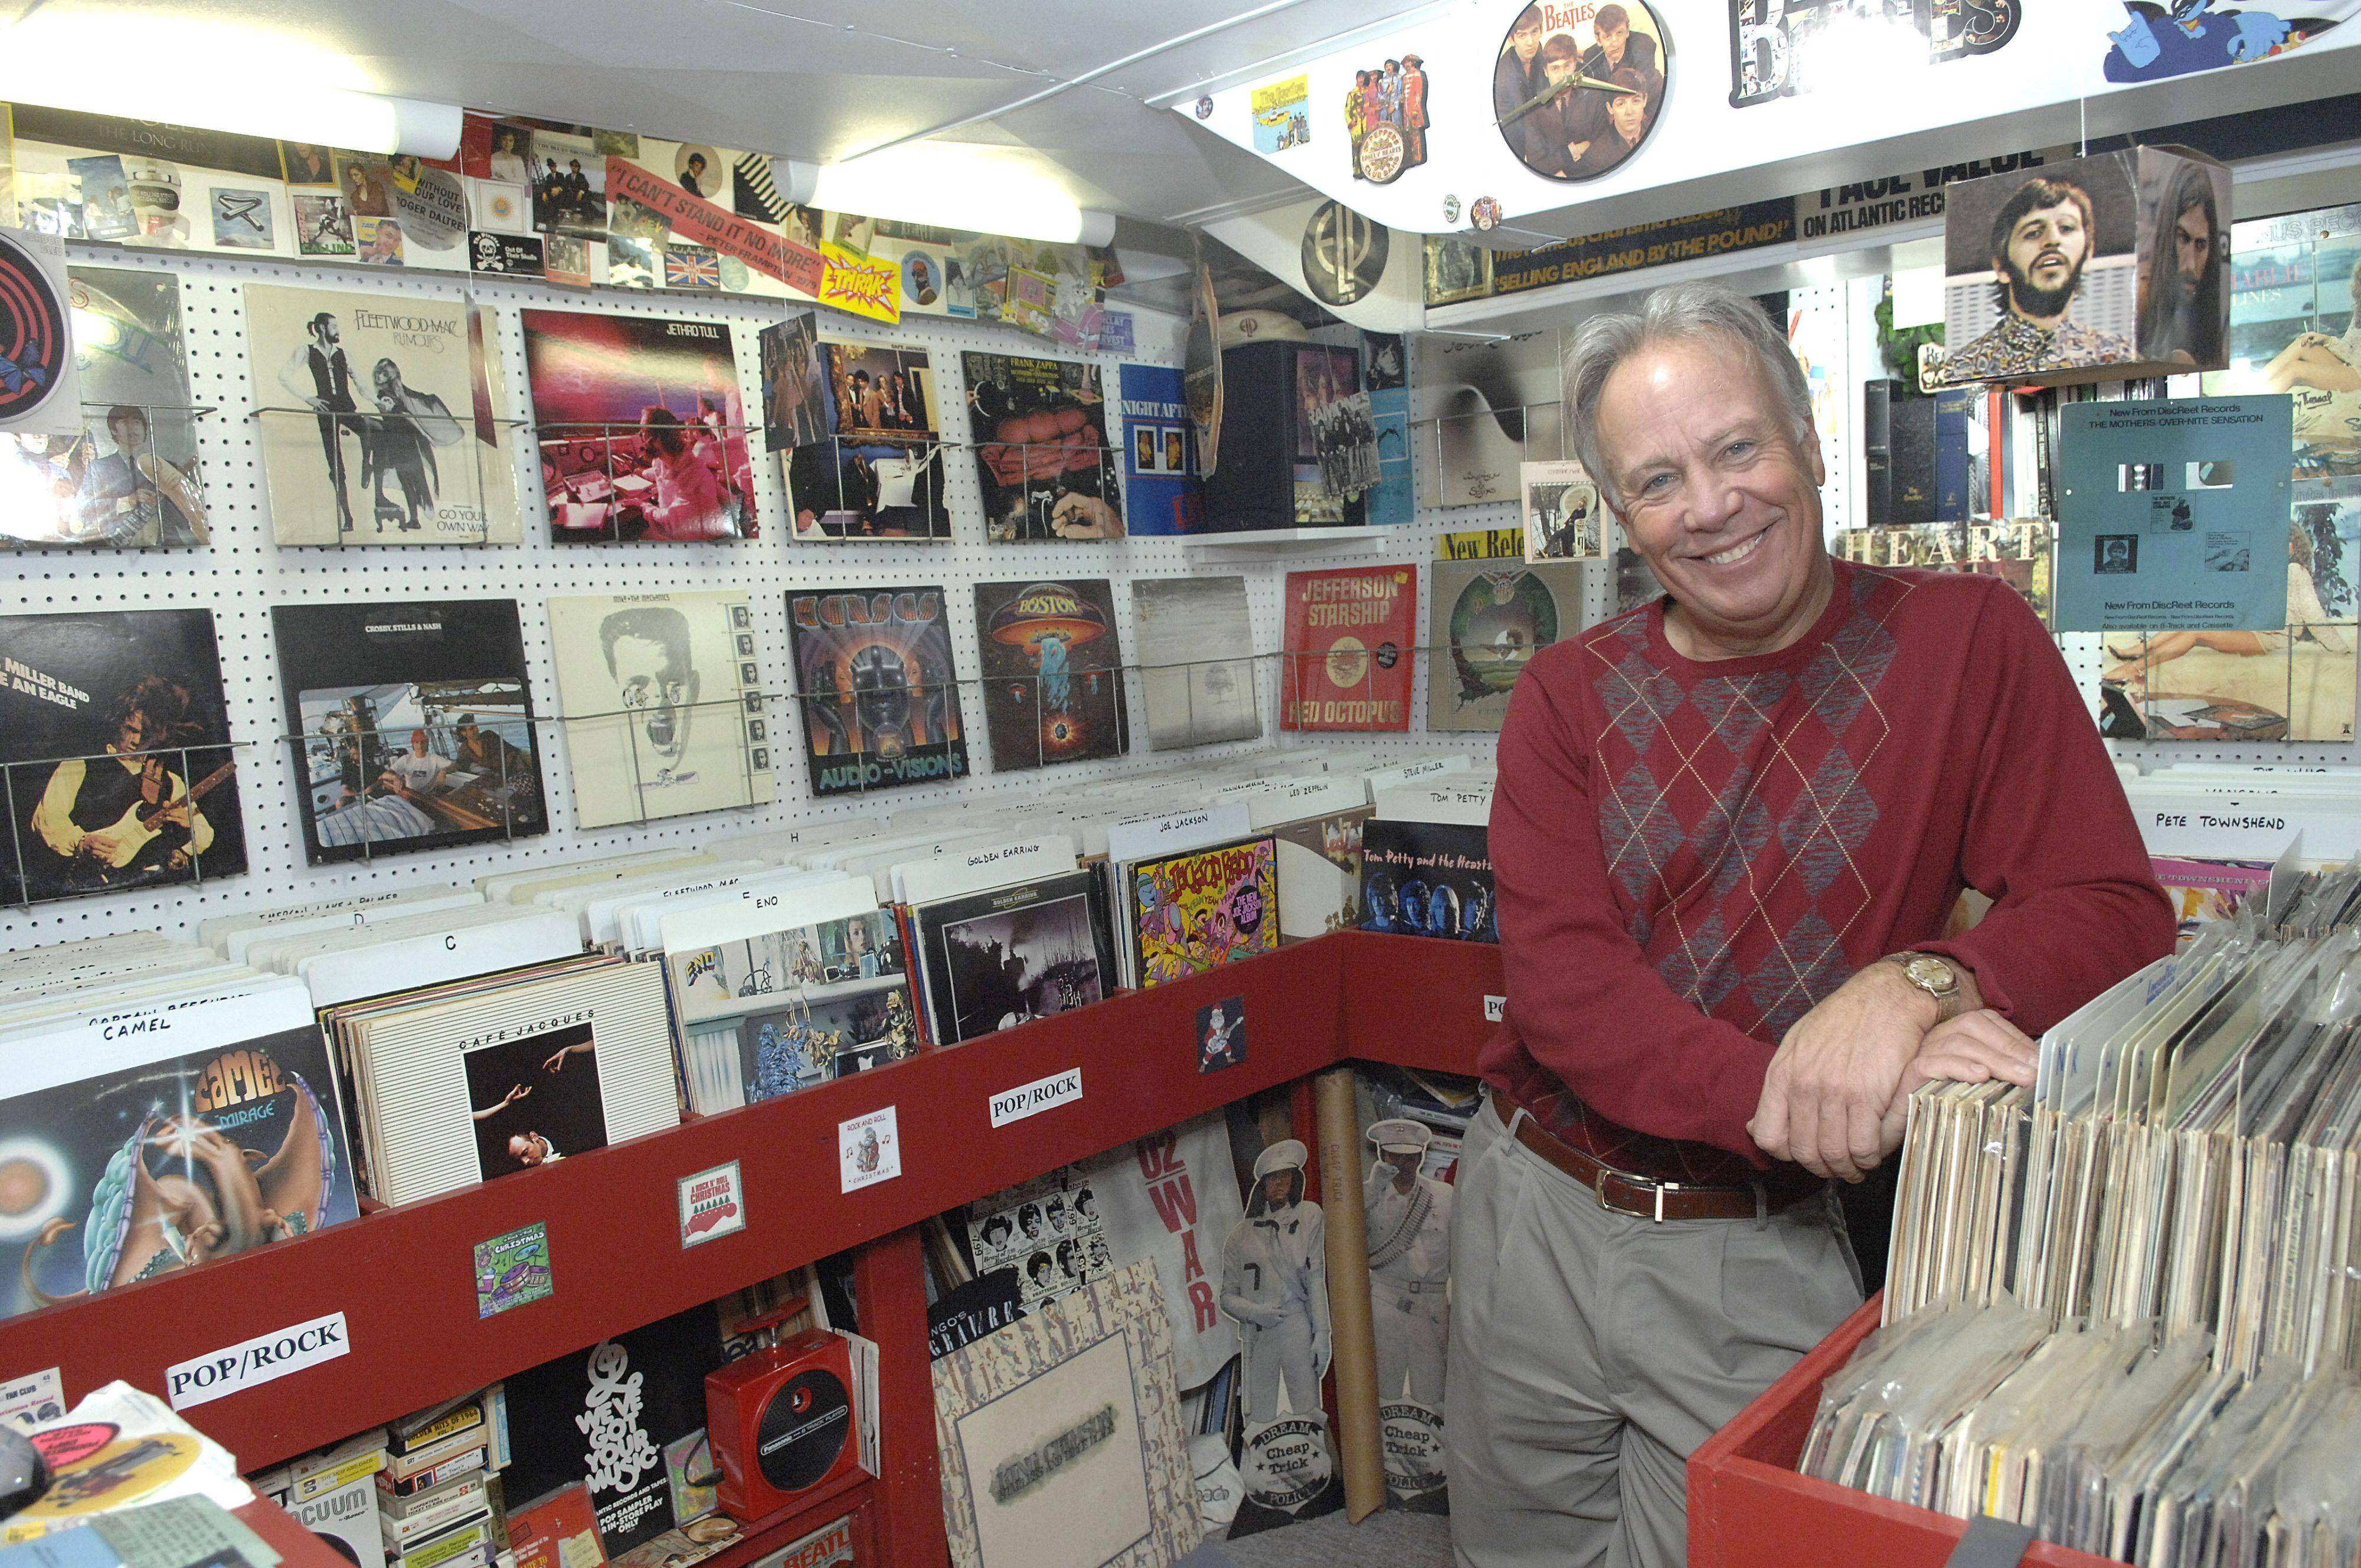 Steve Thoren stands in the newest room in the house, the record shop, which stores a part of his 8,000 records. This room was completed a year and a half ago.